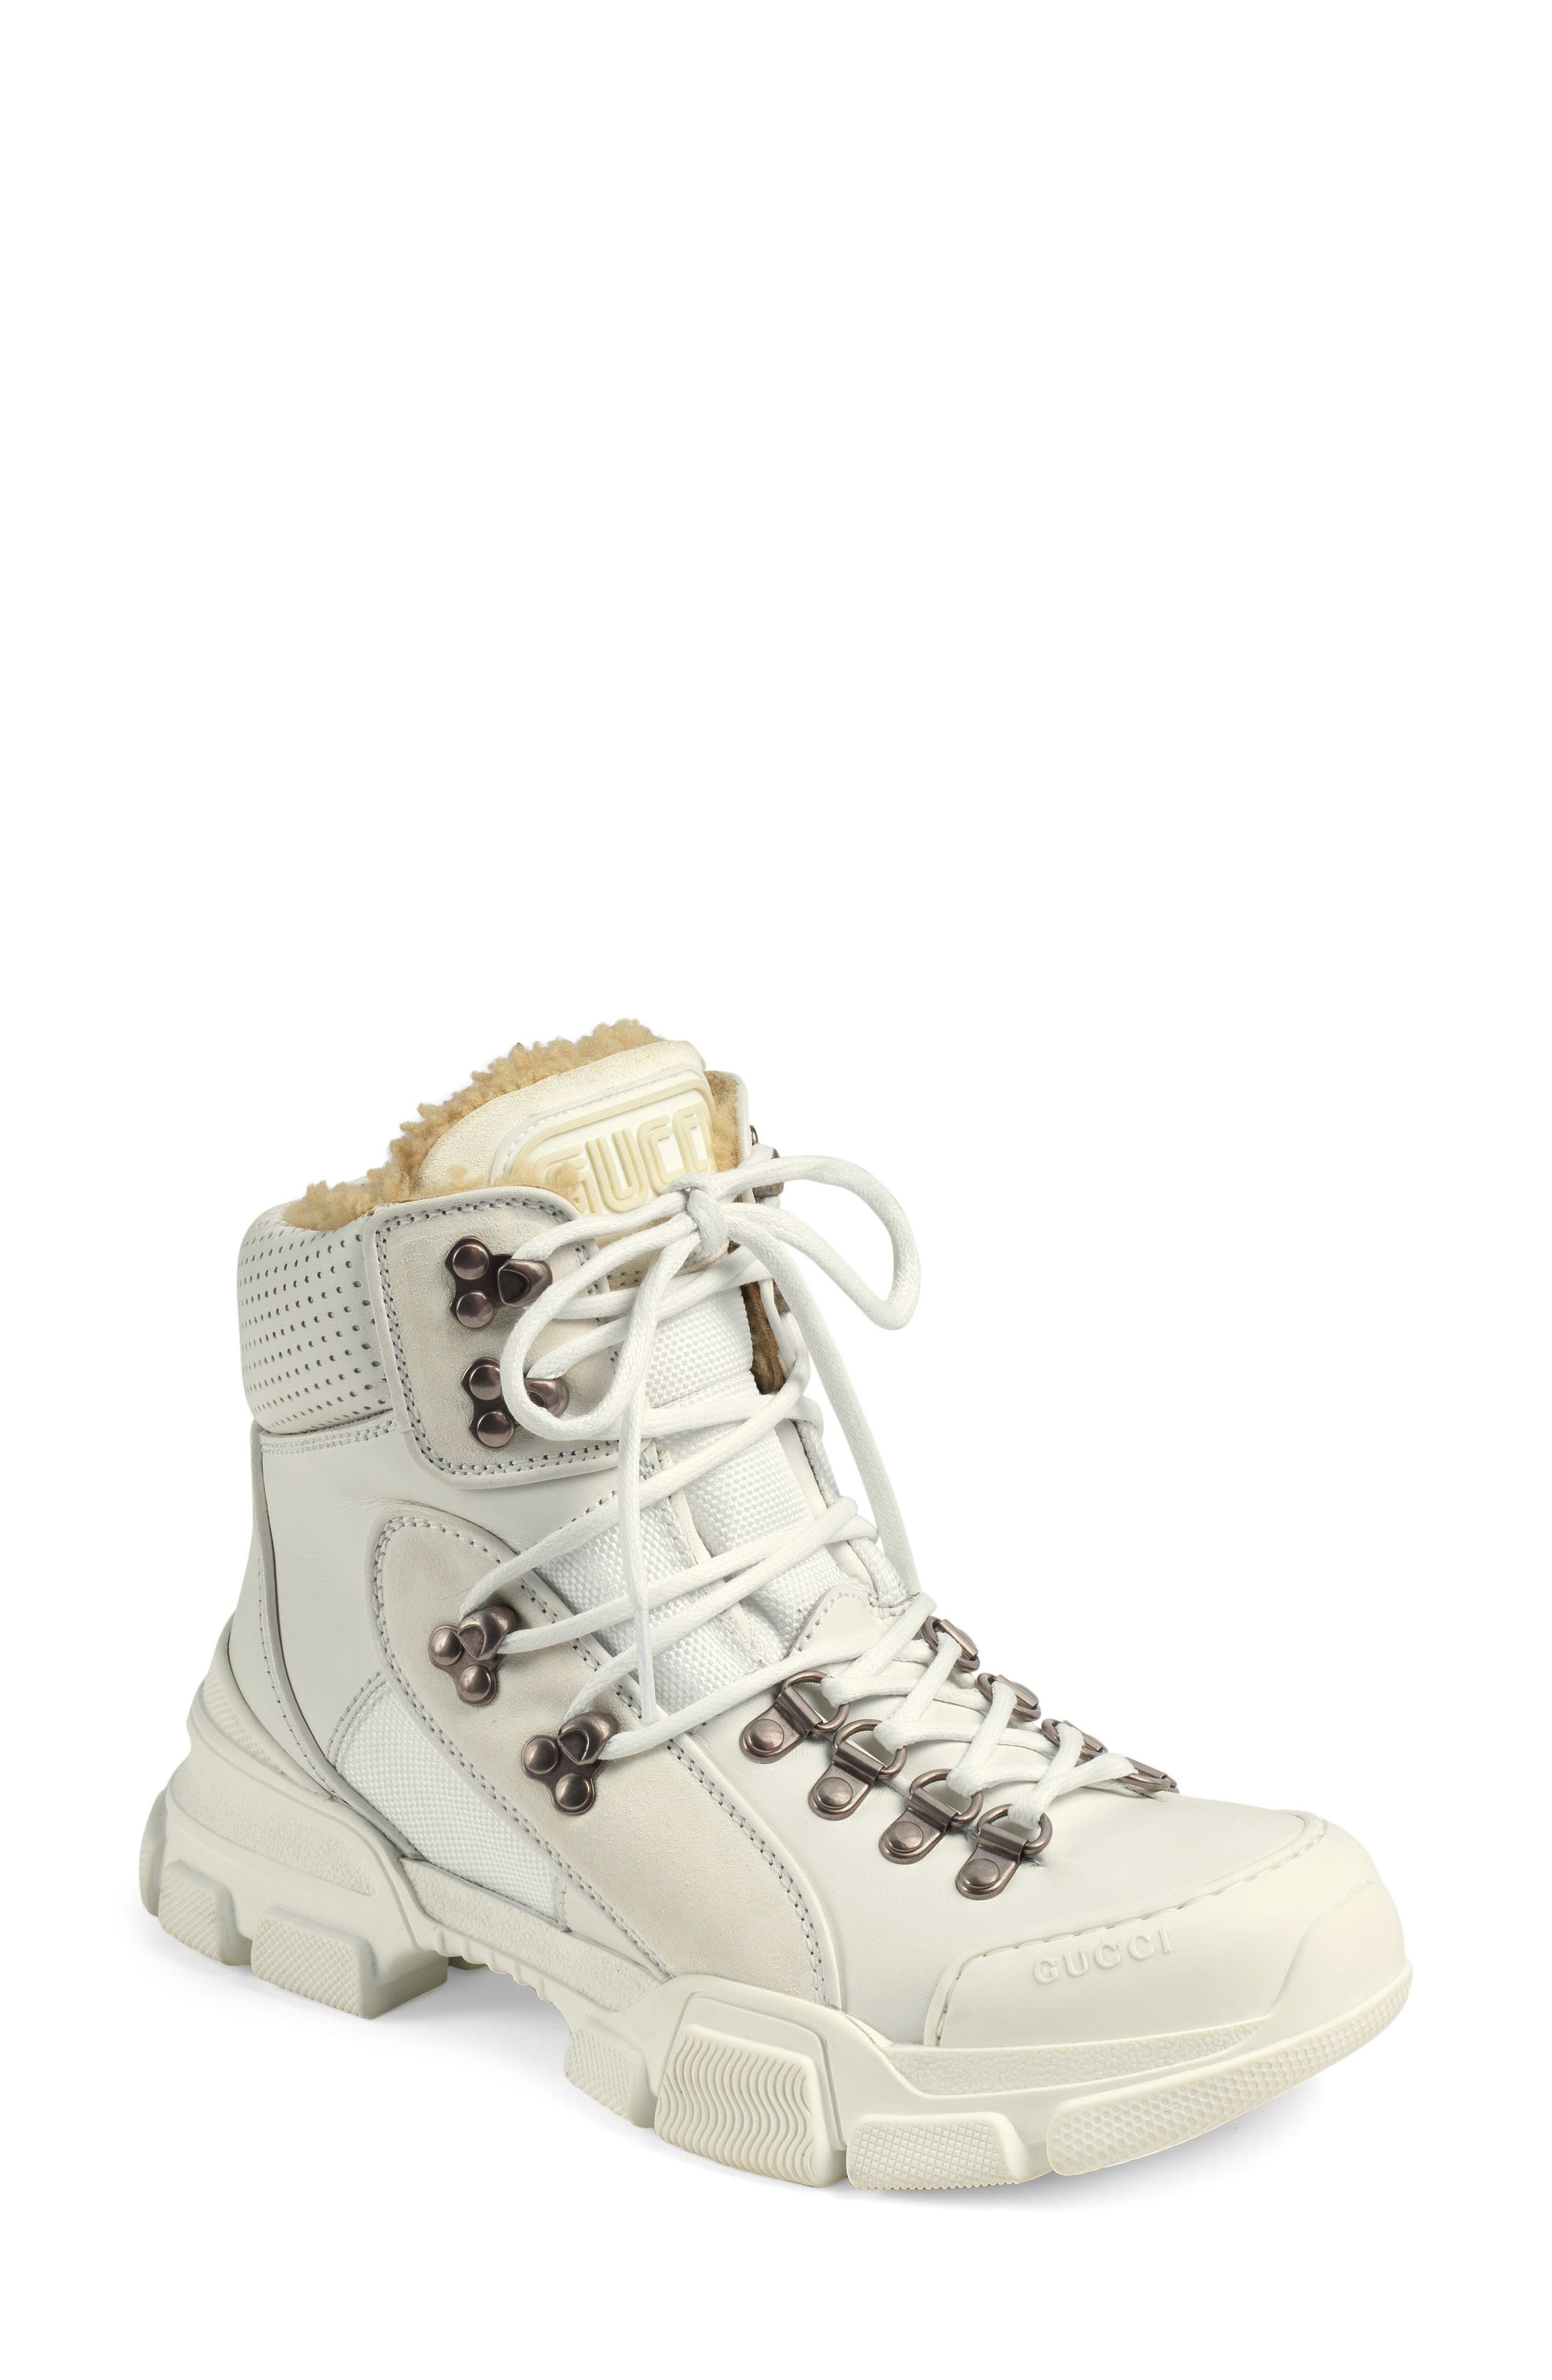 GUCCI, Journey Genuine Shearling Hiker Boot, Main thumbnail 1, color, WHITE